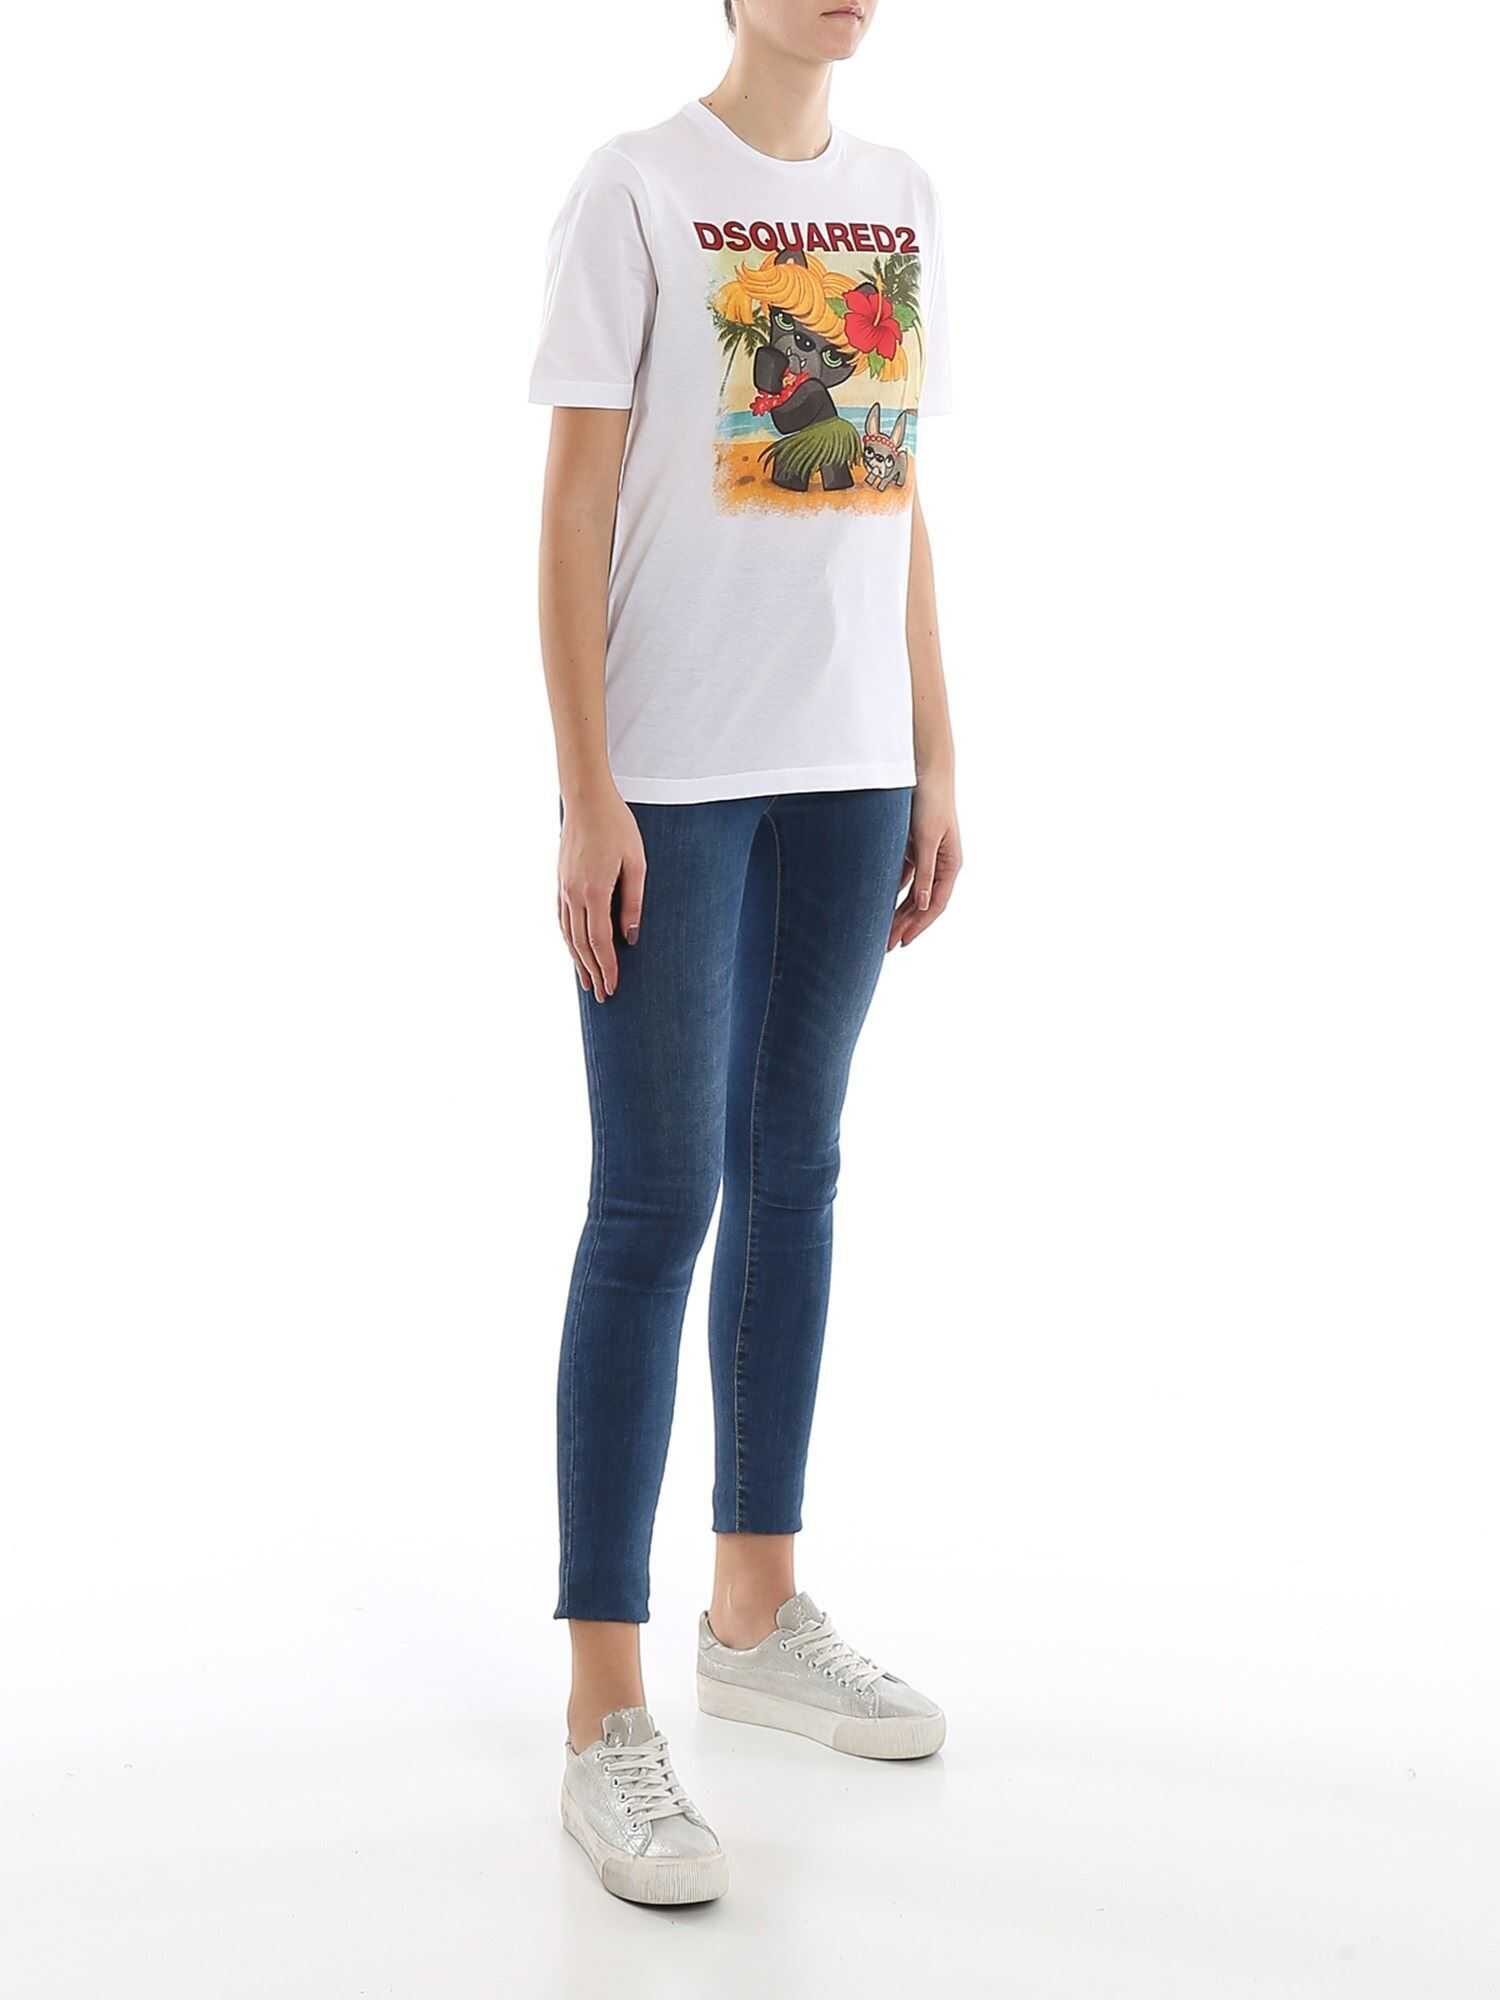 DSQUARED2 Logo Printed Cotton Jersey T-Shirt White